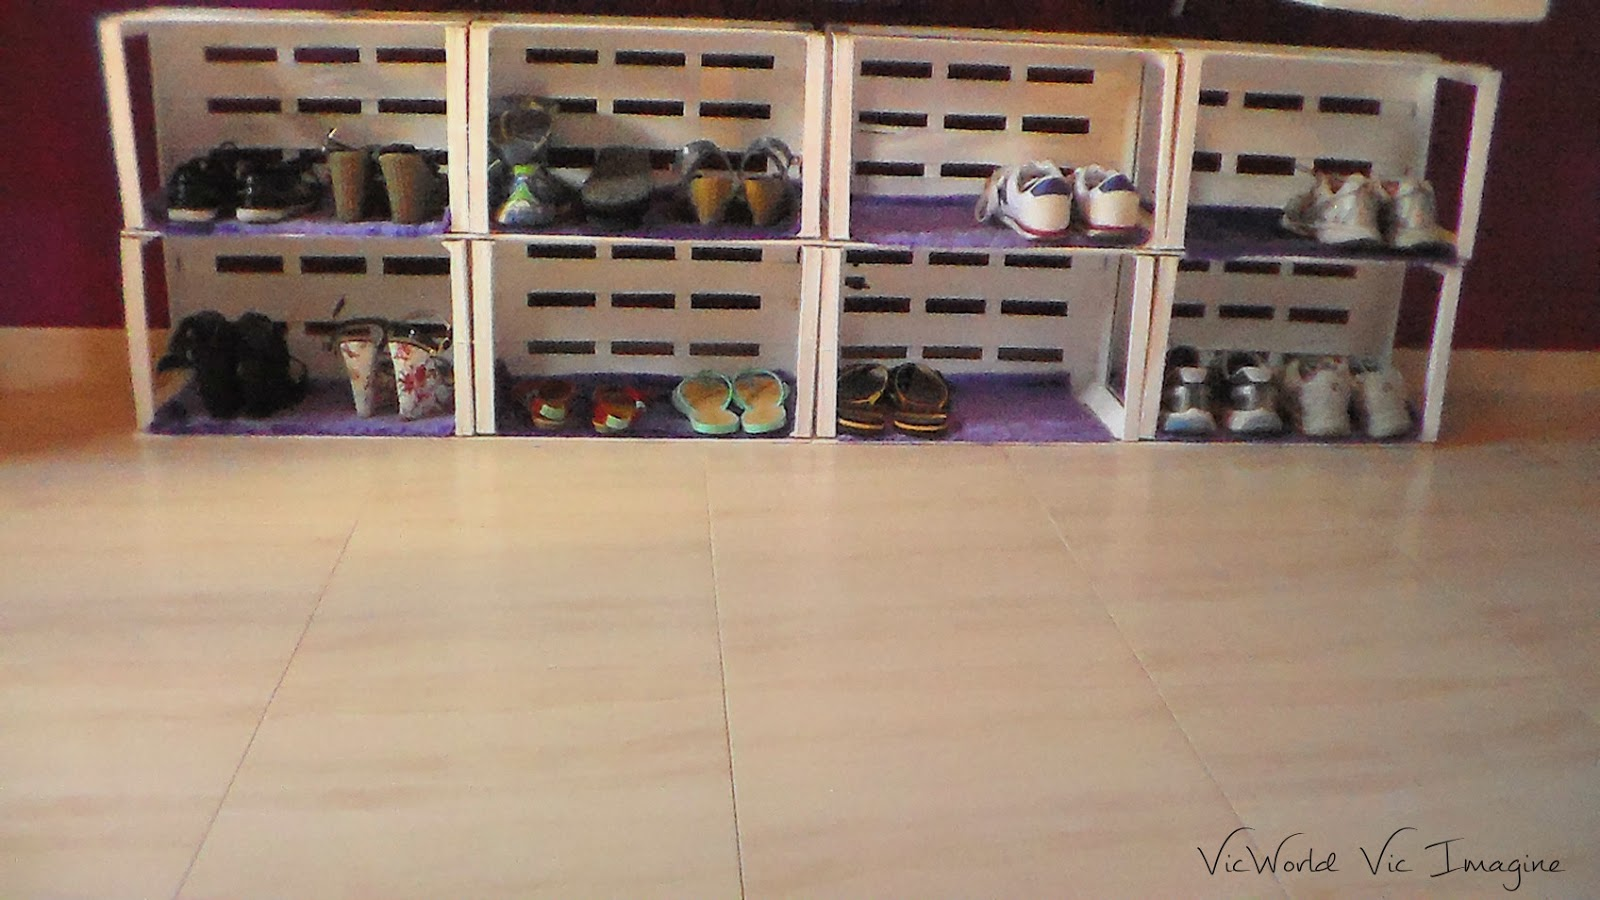 Vicworld vic imagine mi zapatero diy for Disenos de zapateras de madera